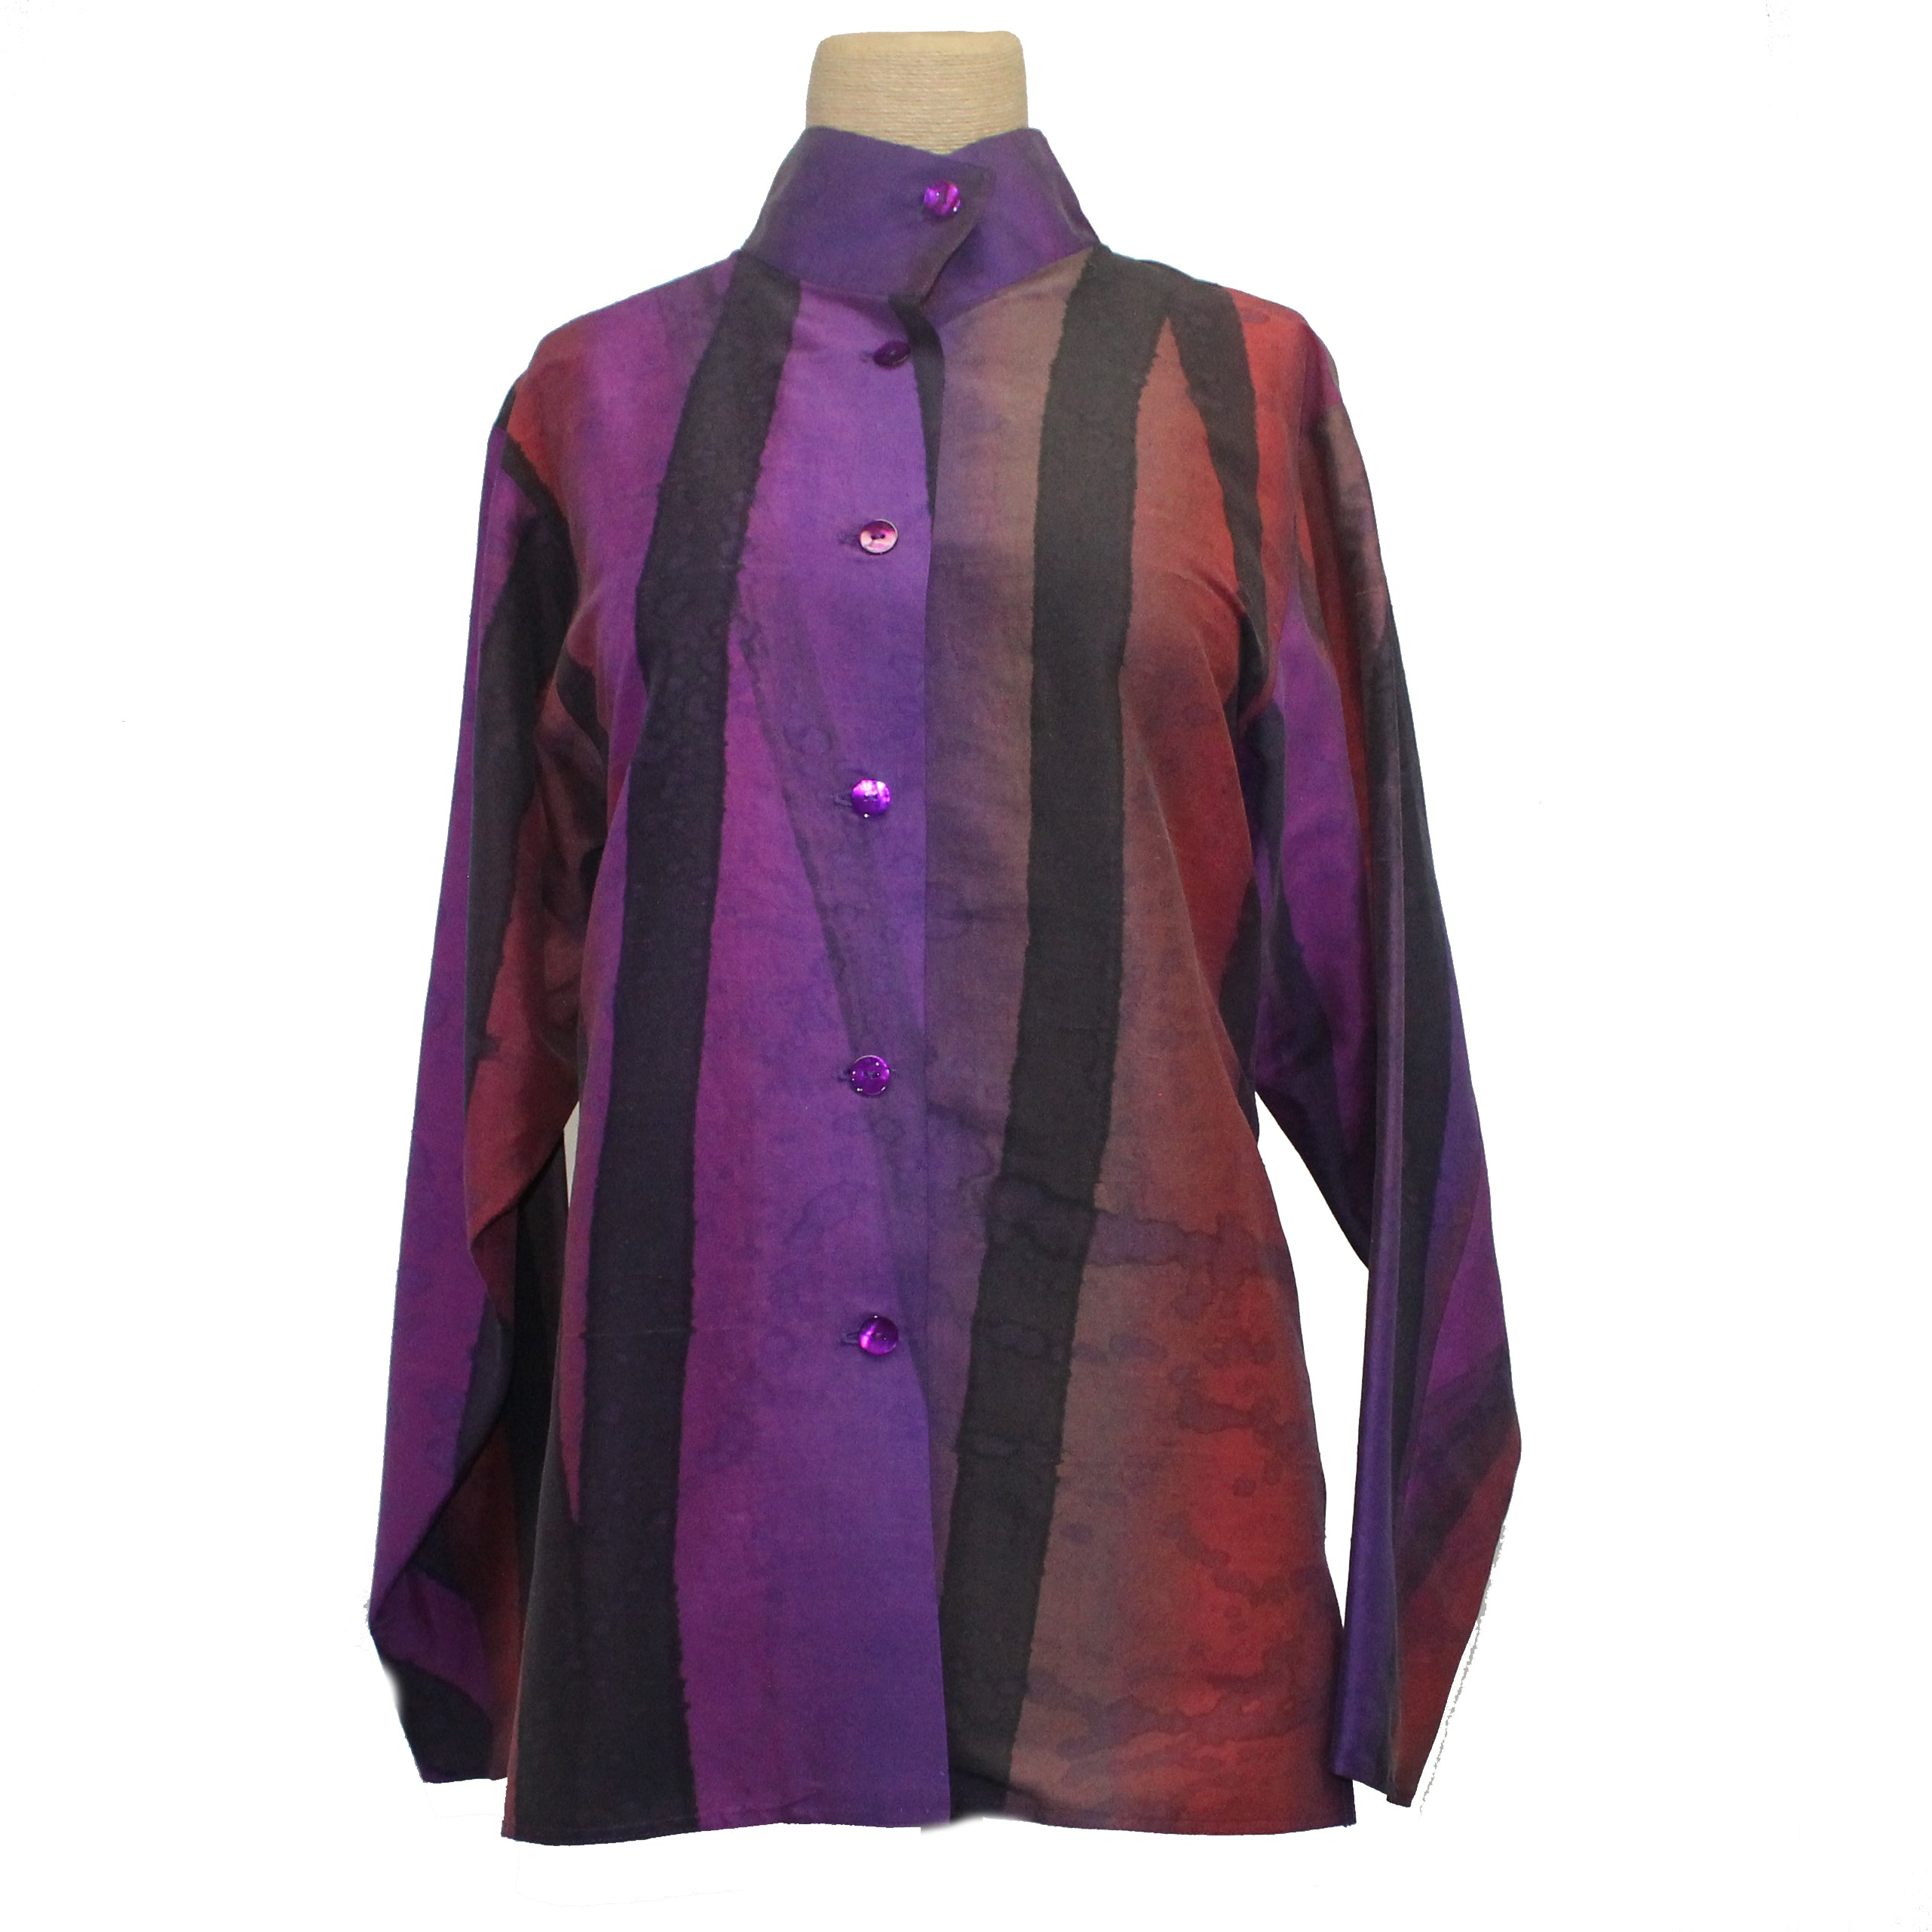 Kay Chapman Shirt, Purple/Rust/Black, M